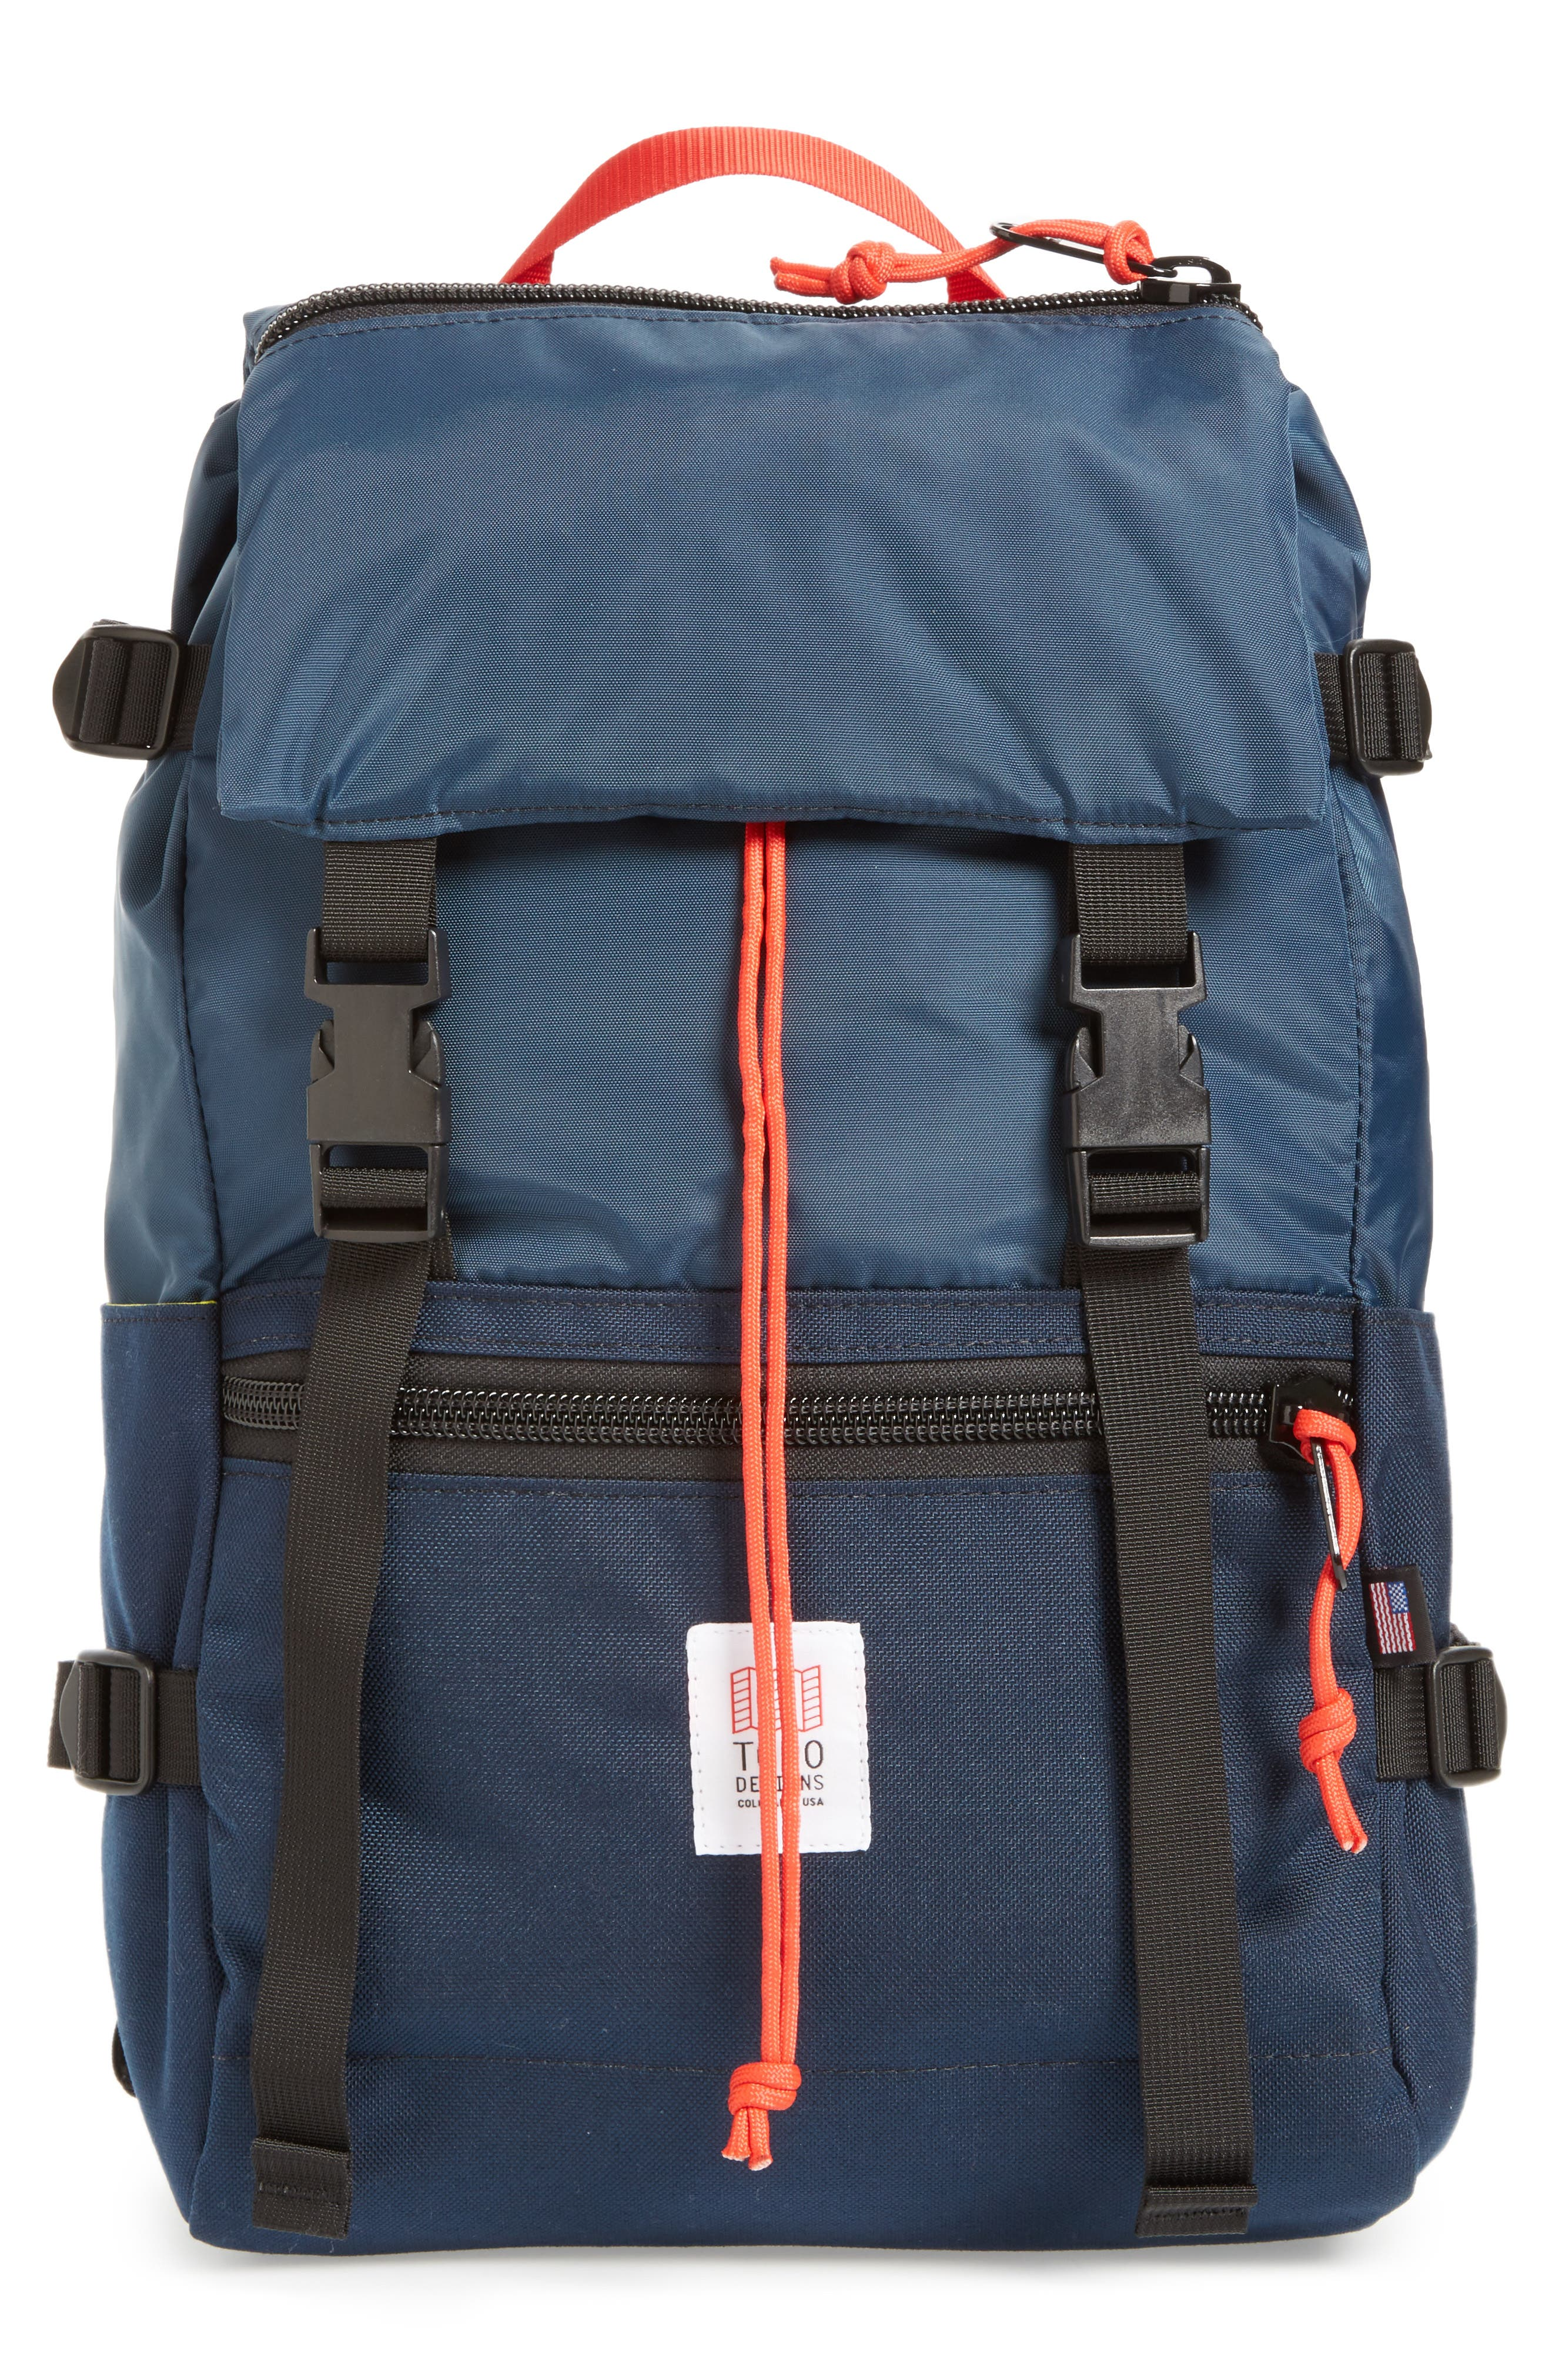 Topo Designs Rover Backpack